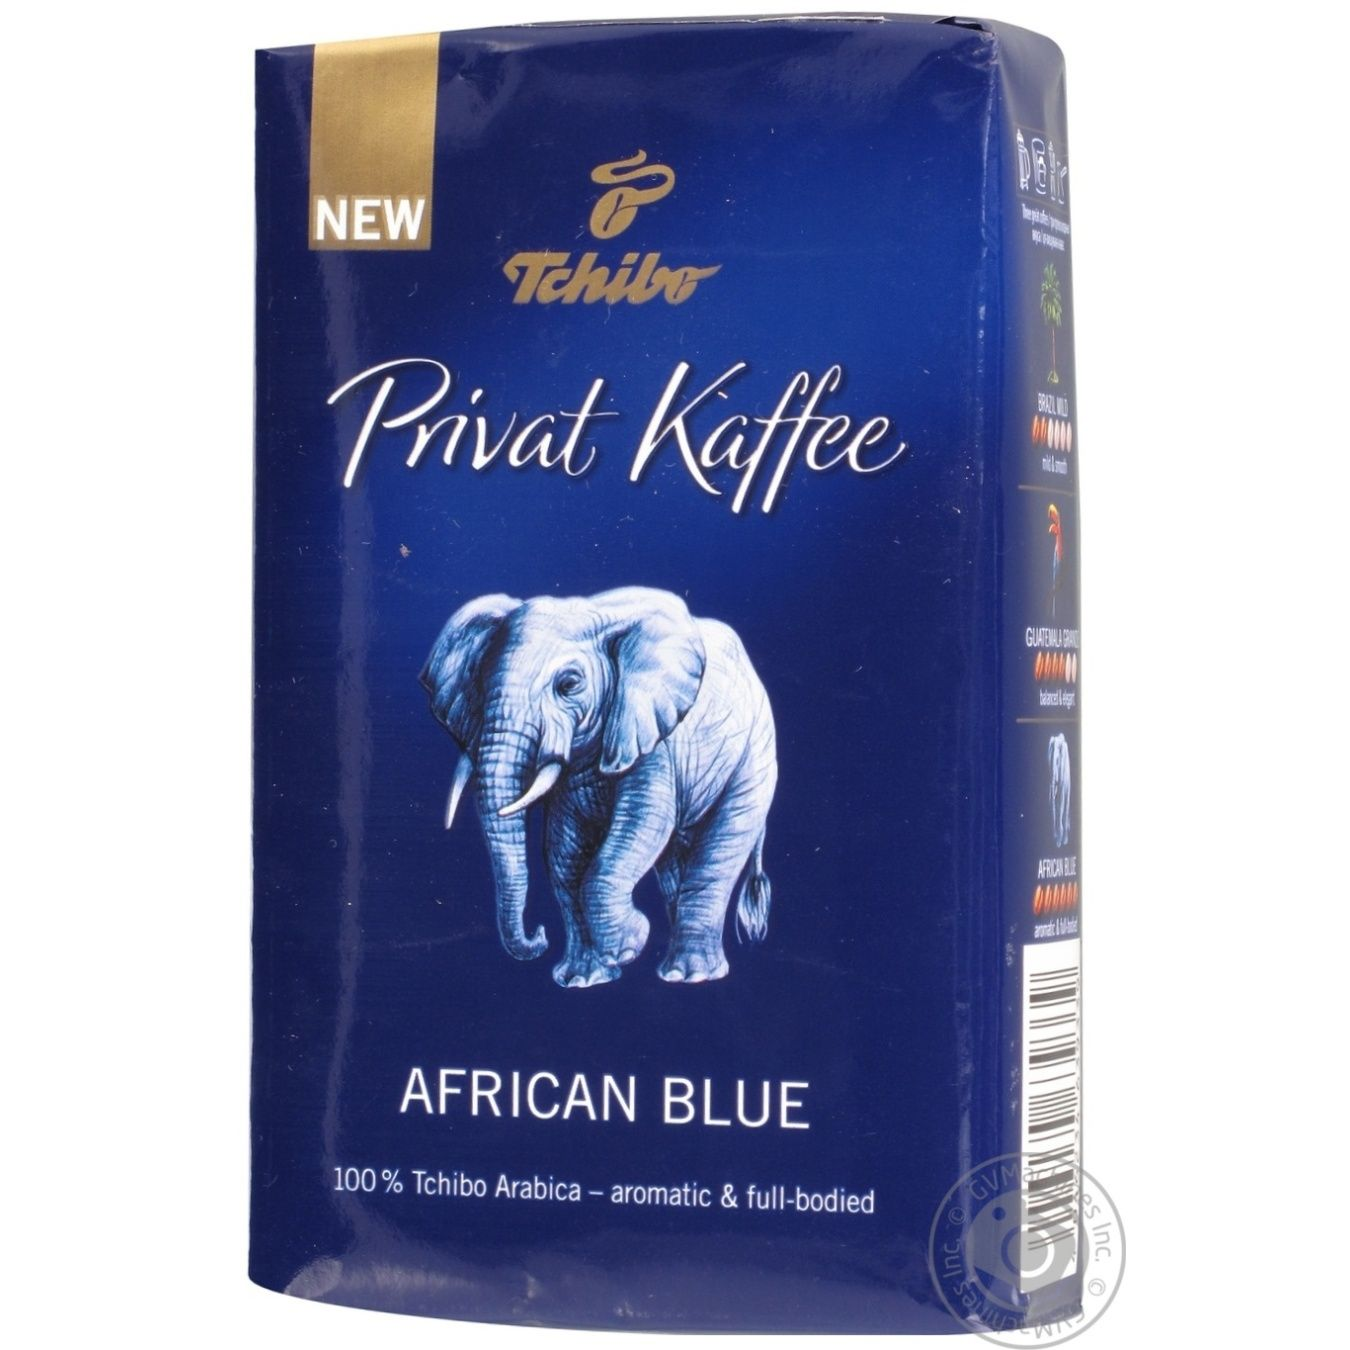 natural ground medium roasted coffee tchibo privat kaffee african blue 100 arabica 250g germany. Black Bedroom Furniture Sets. Home Design Ideas